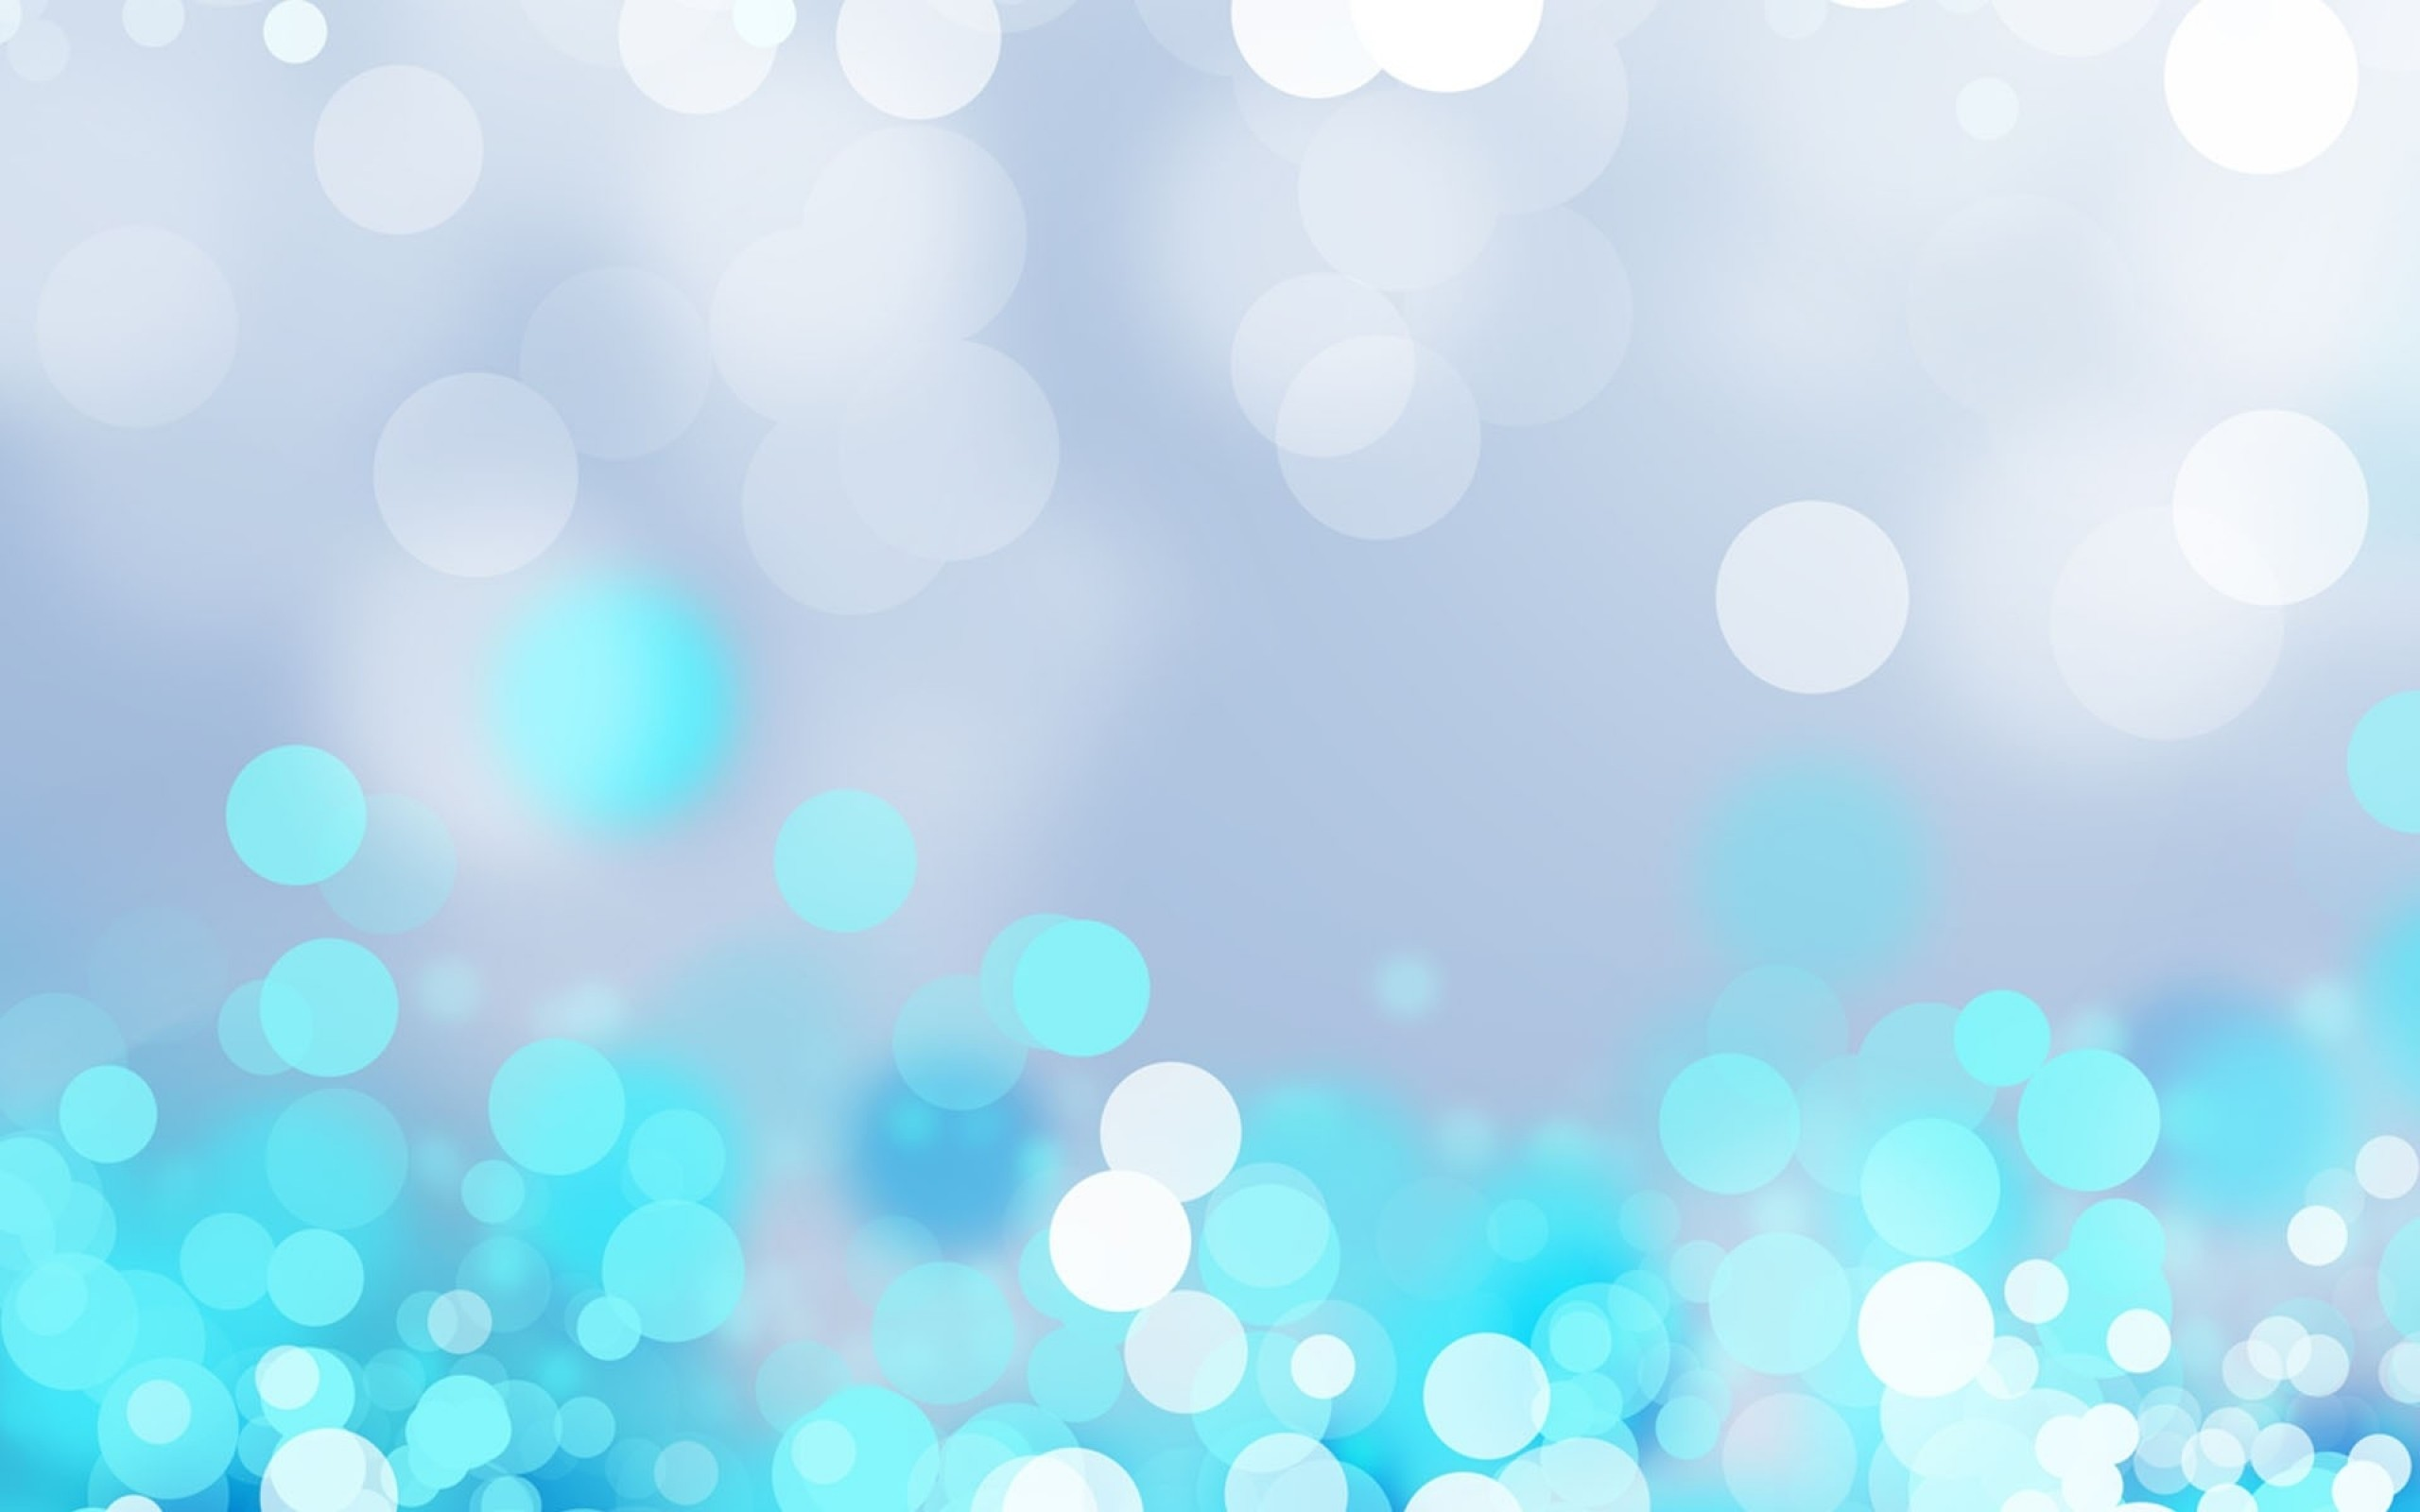 2560x1600 Light Blue Computer Wallpapers, Desktop Backgrounds |  | ID .